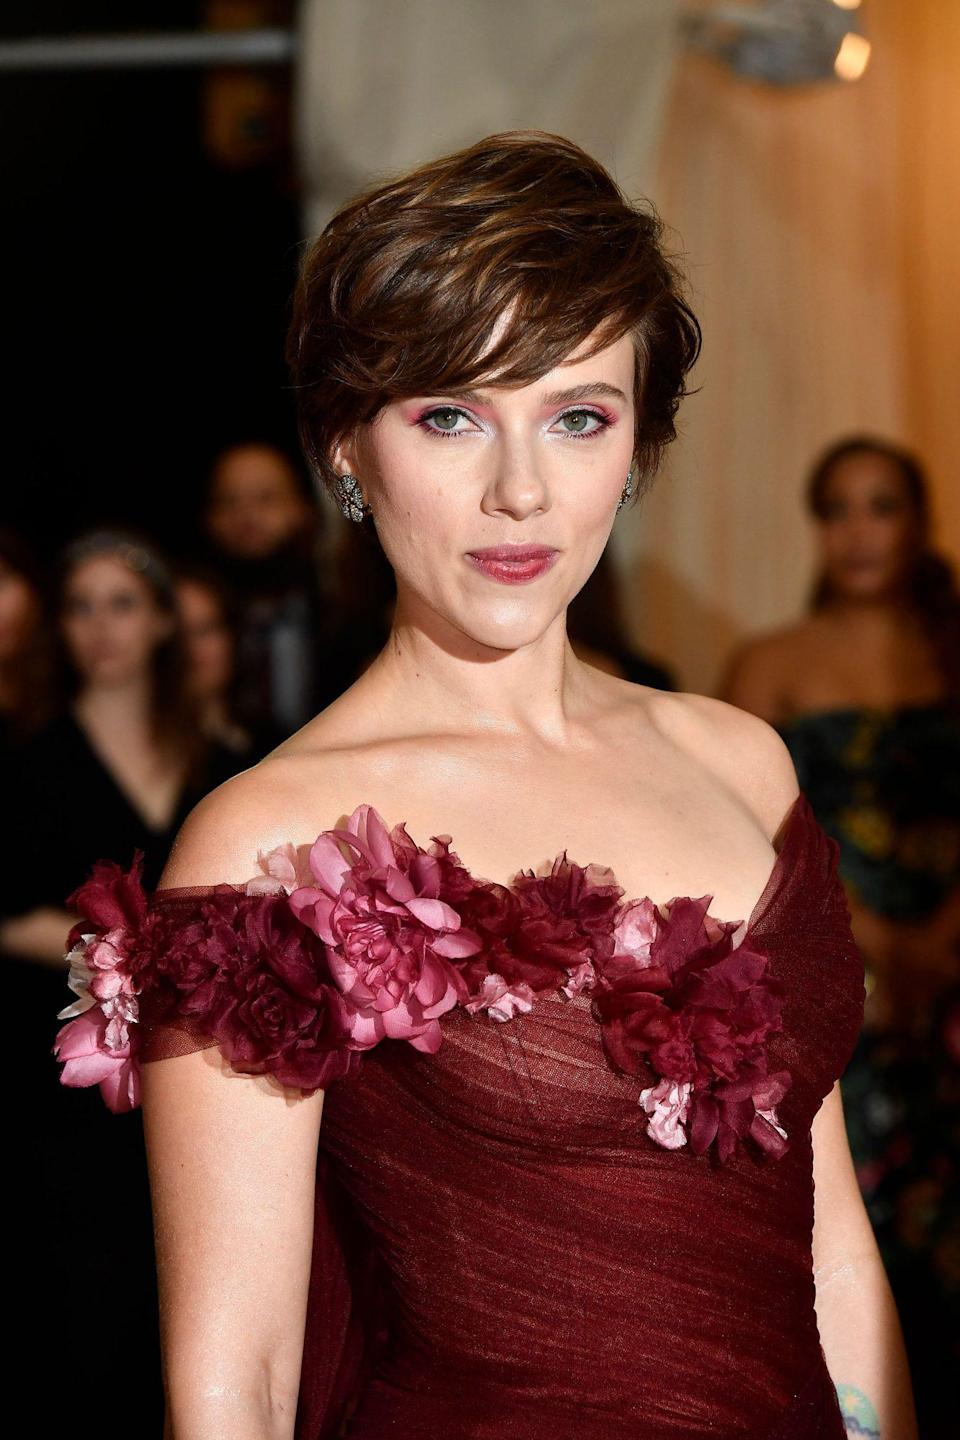 """<p>If you're looking to go short but not too short, a pixie with bangs is the perfect way to achieve face-framing short 'do. """"Bangs with a pixie is amazing and will add dramatic flare,"""" says Bergamy.</p>"""